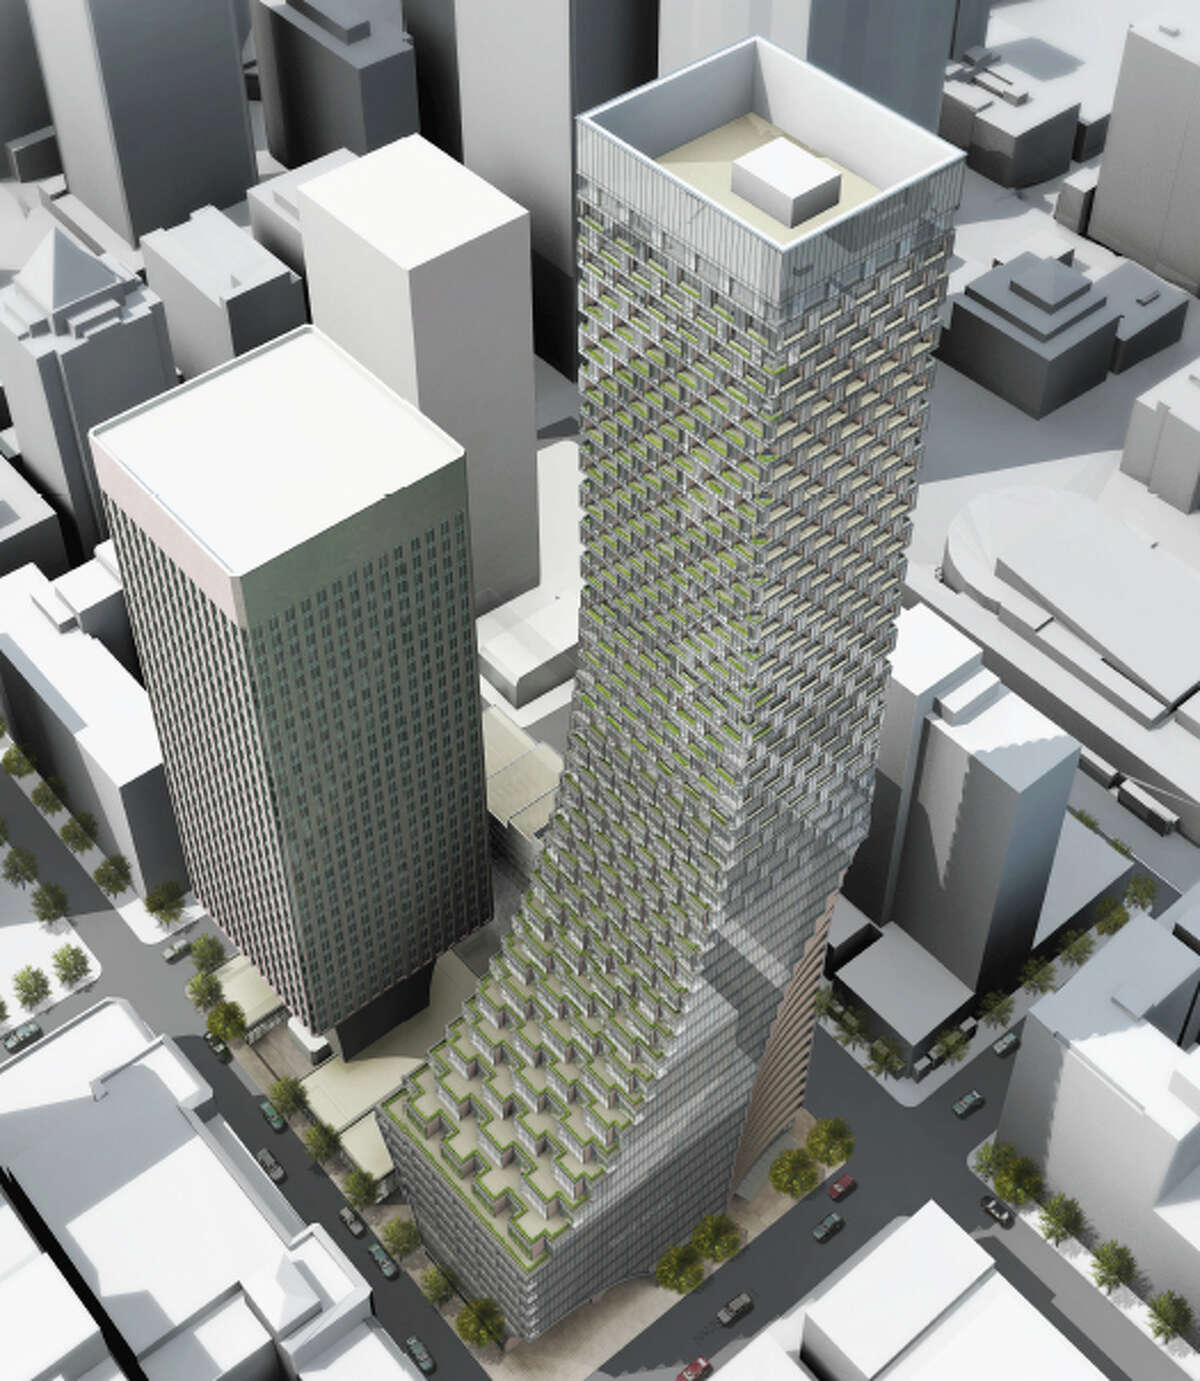 The concept design for redevelopment of the Rainier Square site, beside the existing Rainier Tower, is shown from the northeast in this artist's depiction.